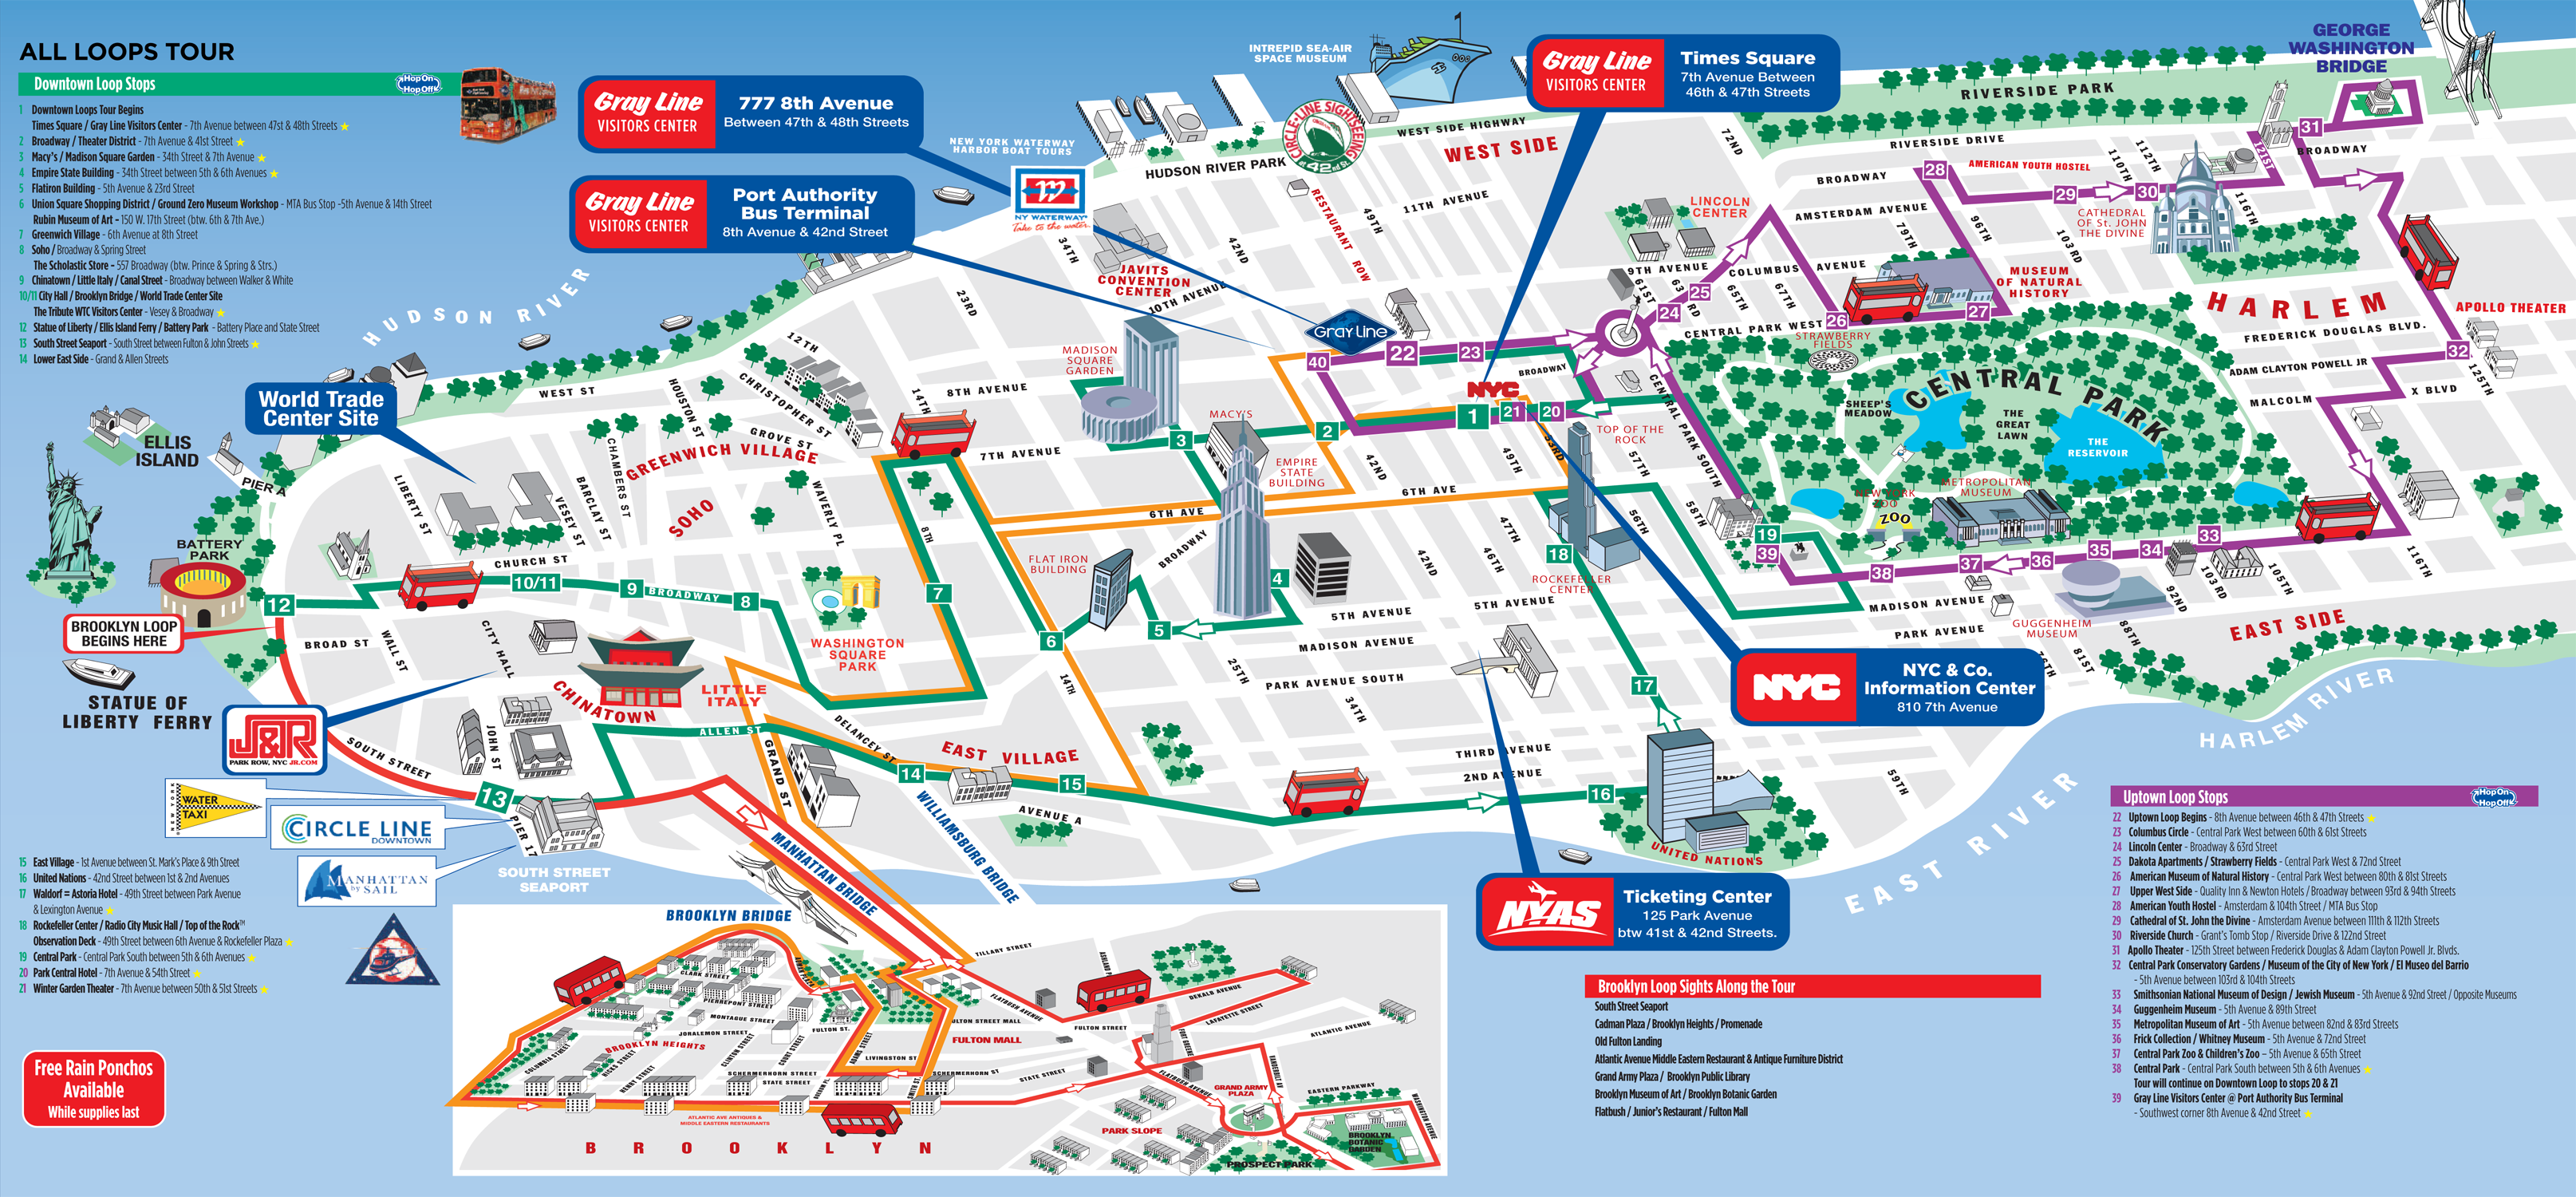 Map Of New York City Tourist Sites.Maps Update 30001102 Tourist Map Of New York City Map Of Nyc